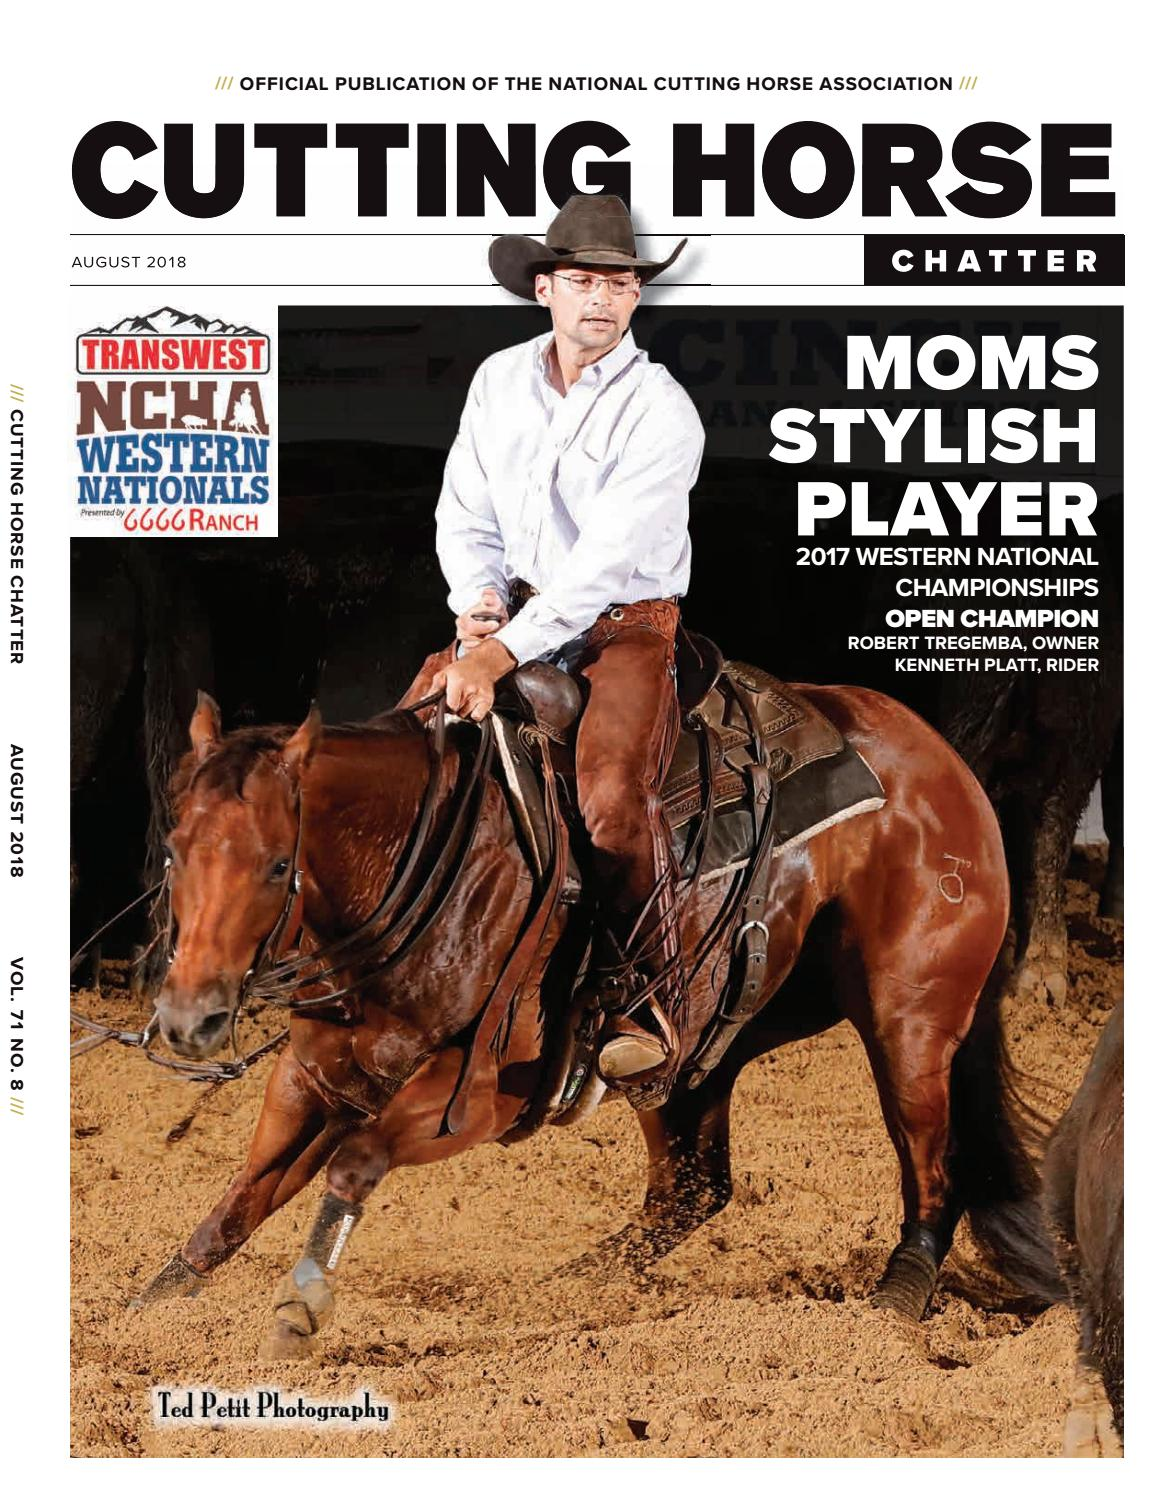 2d459ec123d54f Cutting Horse Chatter August 2018 by Cowboy Publishing Group - issuu